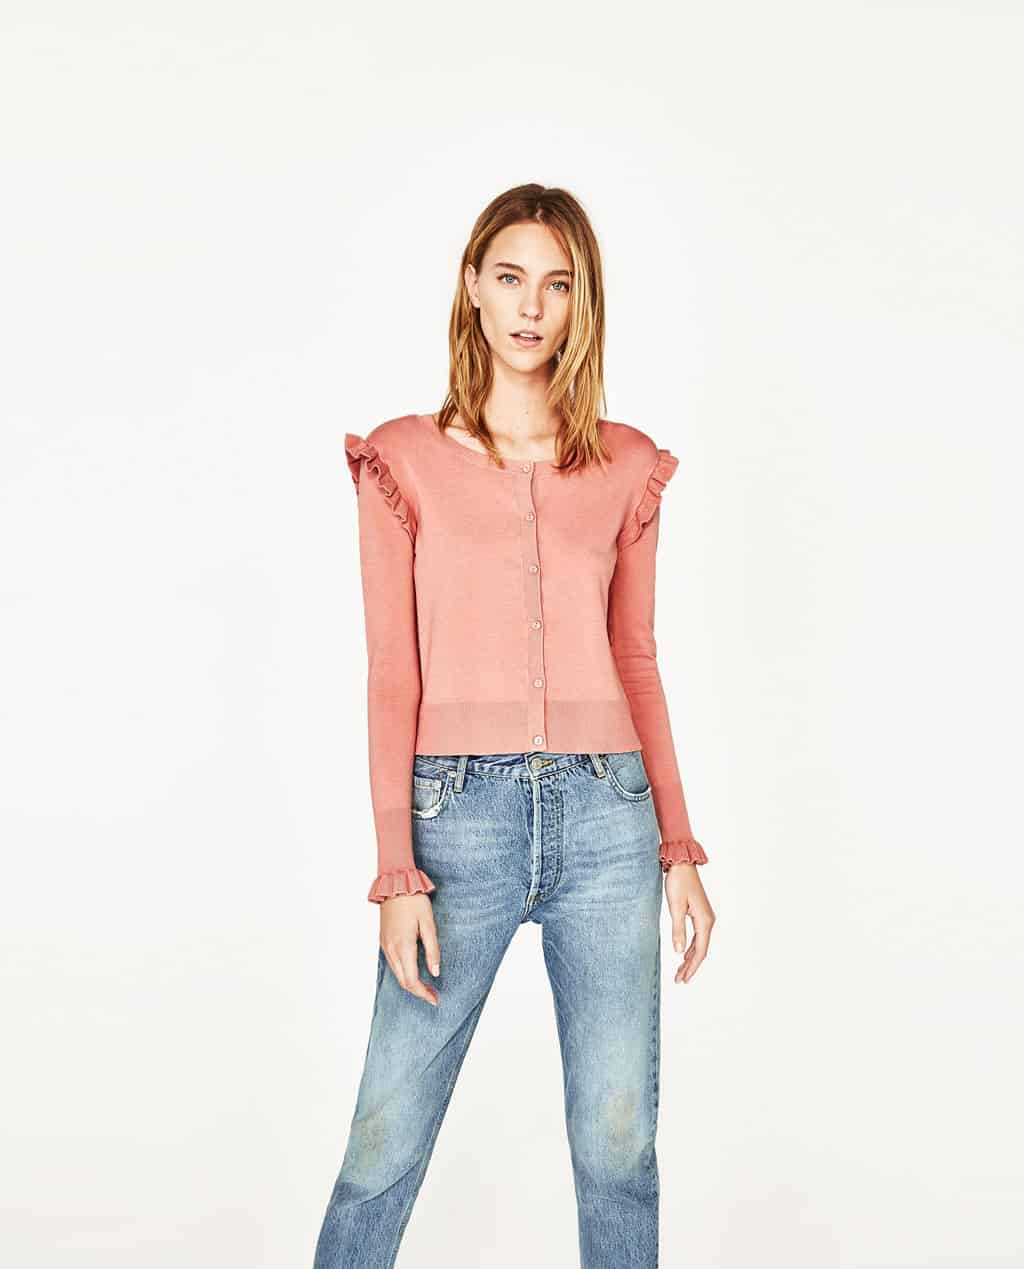 Cardigan with Ruffles only $17.95 from Zara